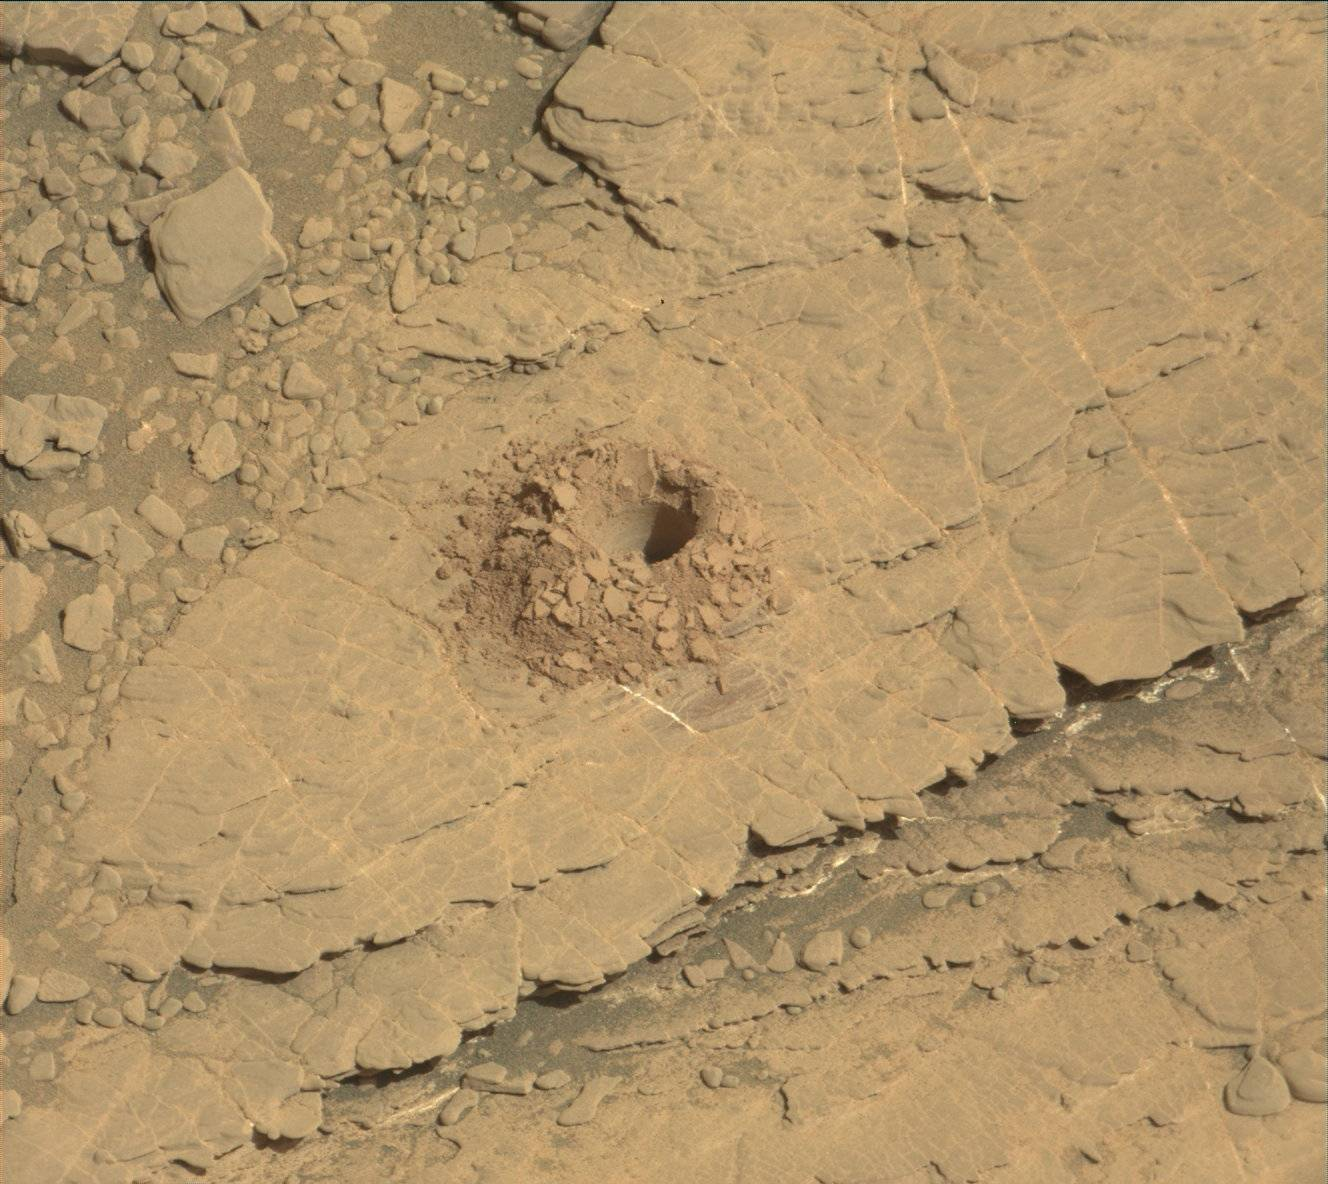 Sol 2488: Success on the 22nd Drill Hole; Happy Landing Day--On to Year 8!